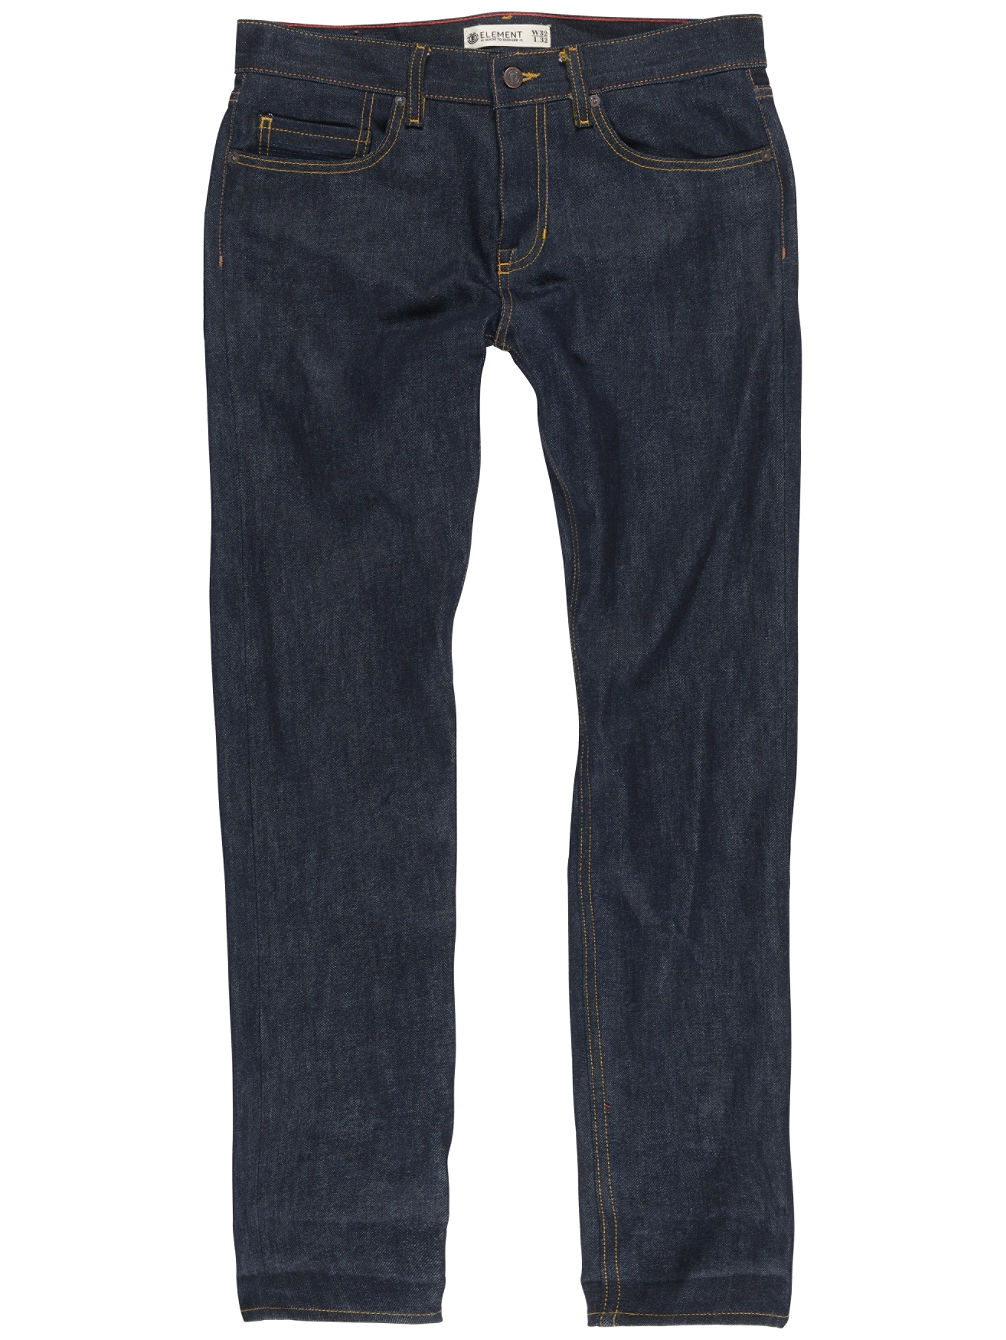 element-boom-jeans